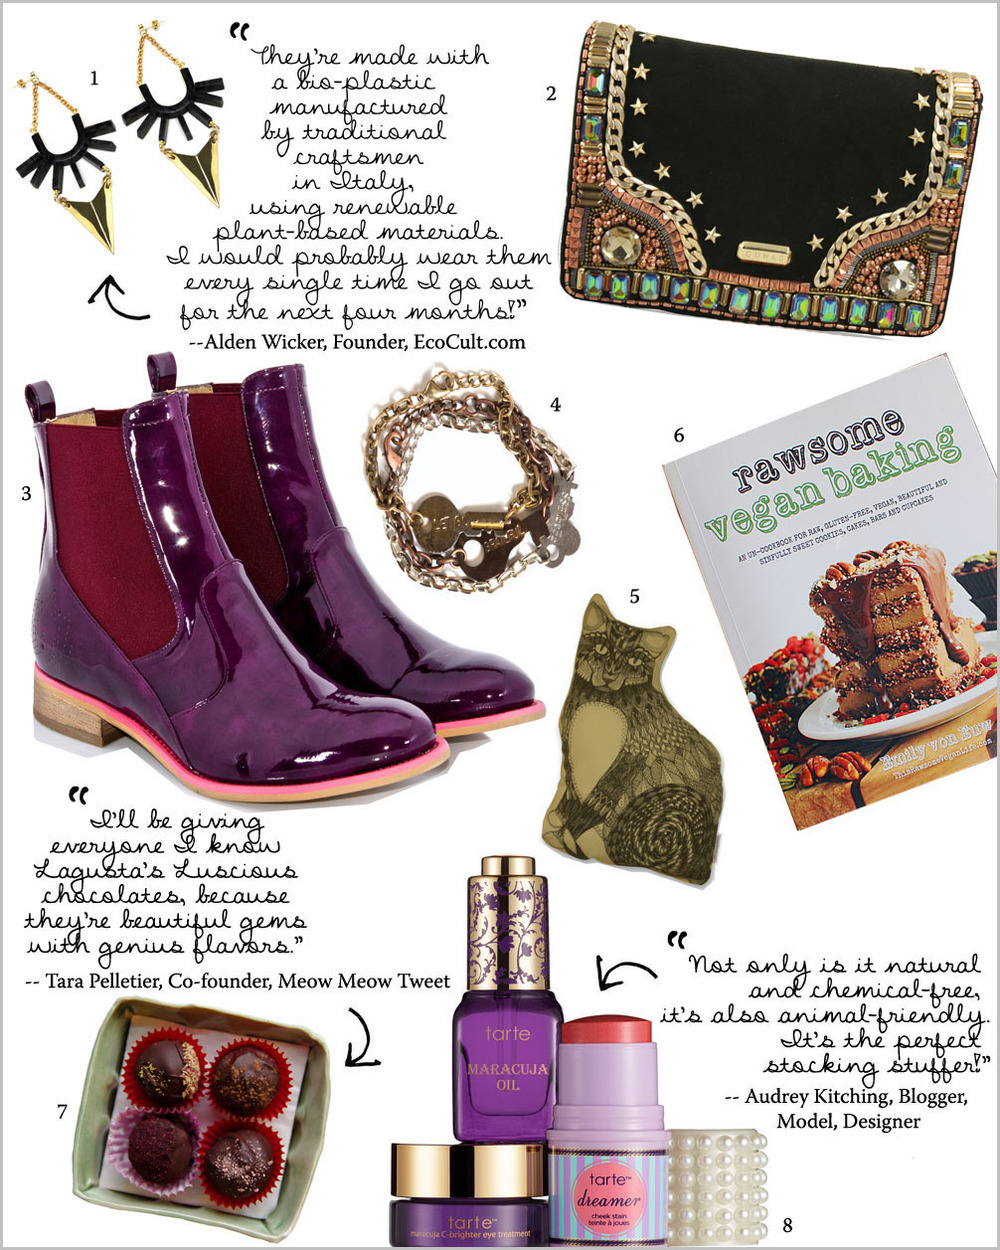 """1. EA Burns """"Span the Depth"""" Earrings // 2. Gunas """"Admiral"""" Clutch // 3. Bourgeois Boheme """"Matilda"""" Patent Boot // 4. The Giving Keys """"Never Ending"""" Bracelets // 5. The Rise and Fall Cat Pillow in Gold // 6. """"Rawsome Vegan Baking"""" Book by Emily Von Euw // 7. Lagusta's Luscious """"Locavore Box"""" of Truffles (Vegan) // 8. Tarte """"Sweet Dreams Best-Sellers Collection"""""""